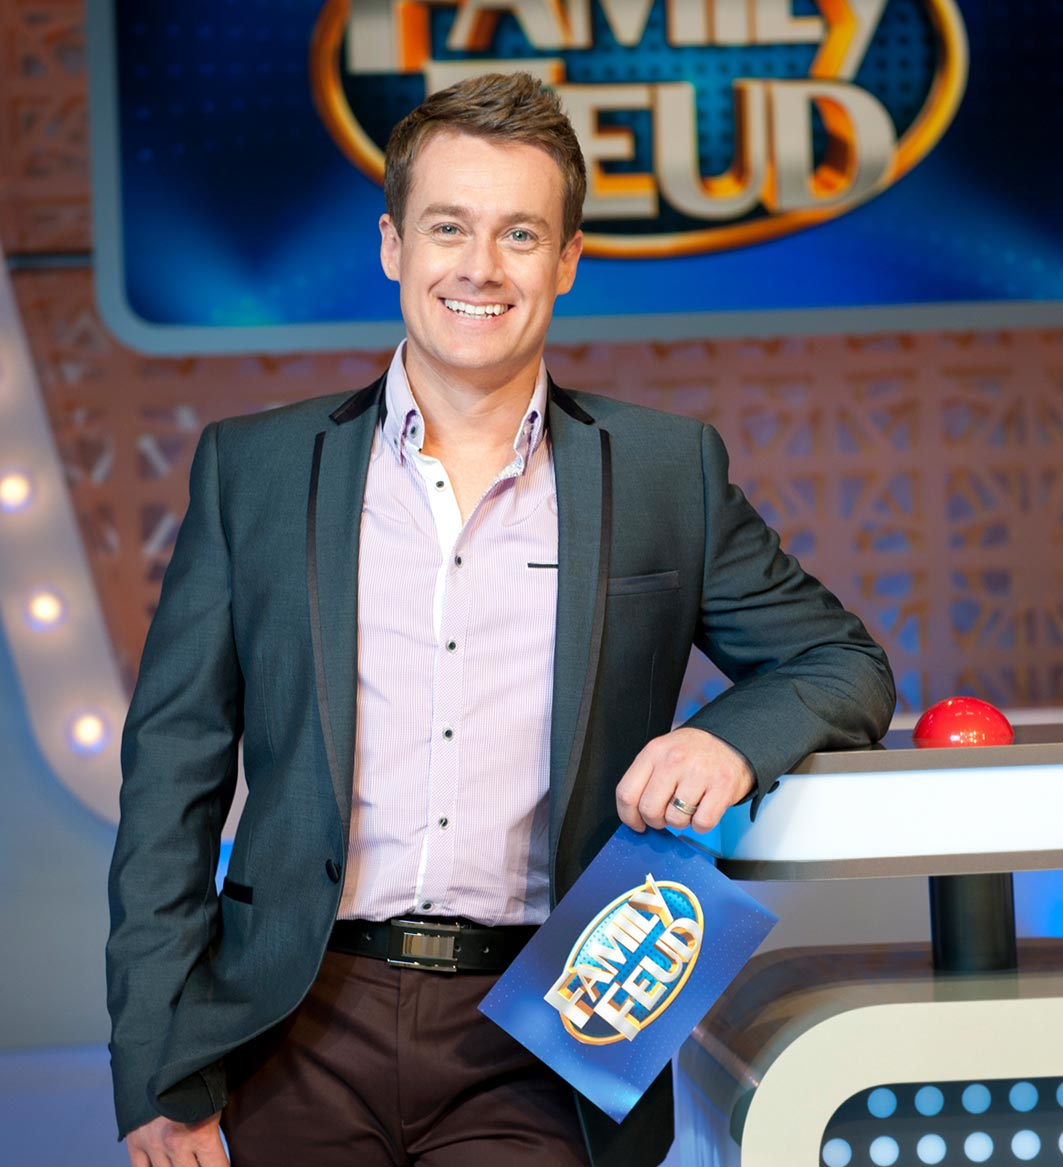 FAMILY FEUD  Network Ten  Family Feud is one of the world's most popular game shows. Regarded as one of the most perfectly constructed game shows ever devised, Family Feud is hosted by Grant Denyer and sees two families face off by answering simple questions that have been surveyed by 100 people to determine the most popular responses. The two families score points by guessing the most popular six answers, revealing that even the most simple question can illicit the funniest – and sometimes downright bizarre – answer!